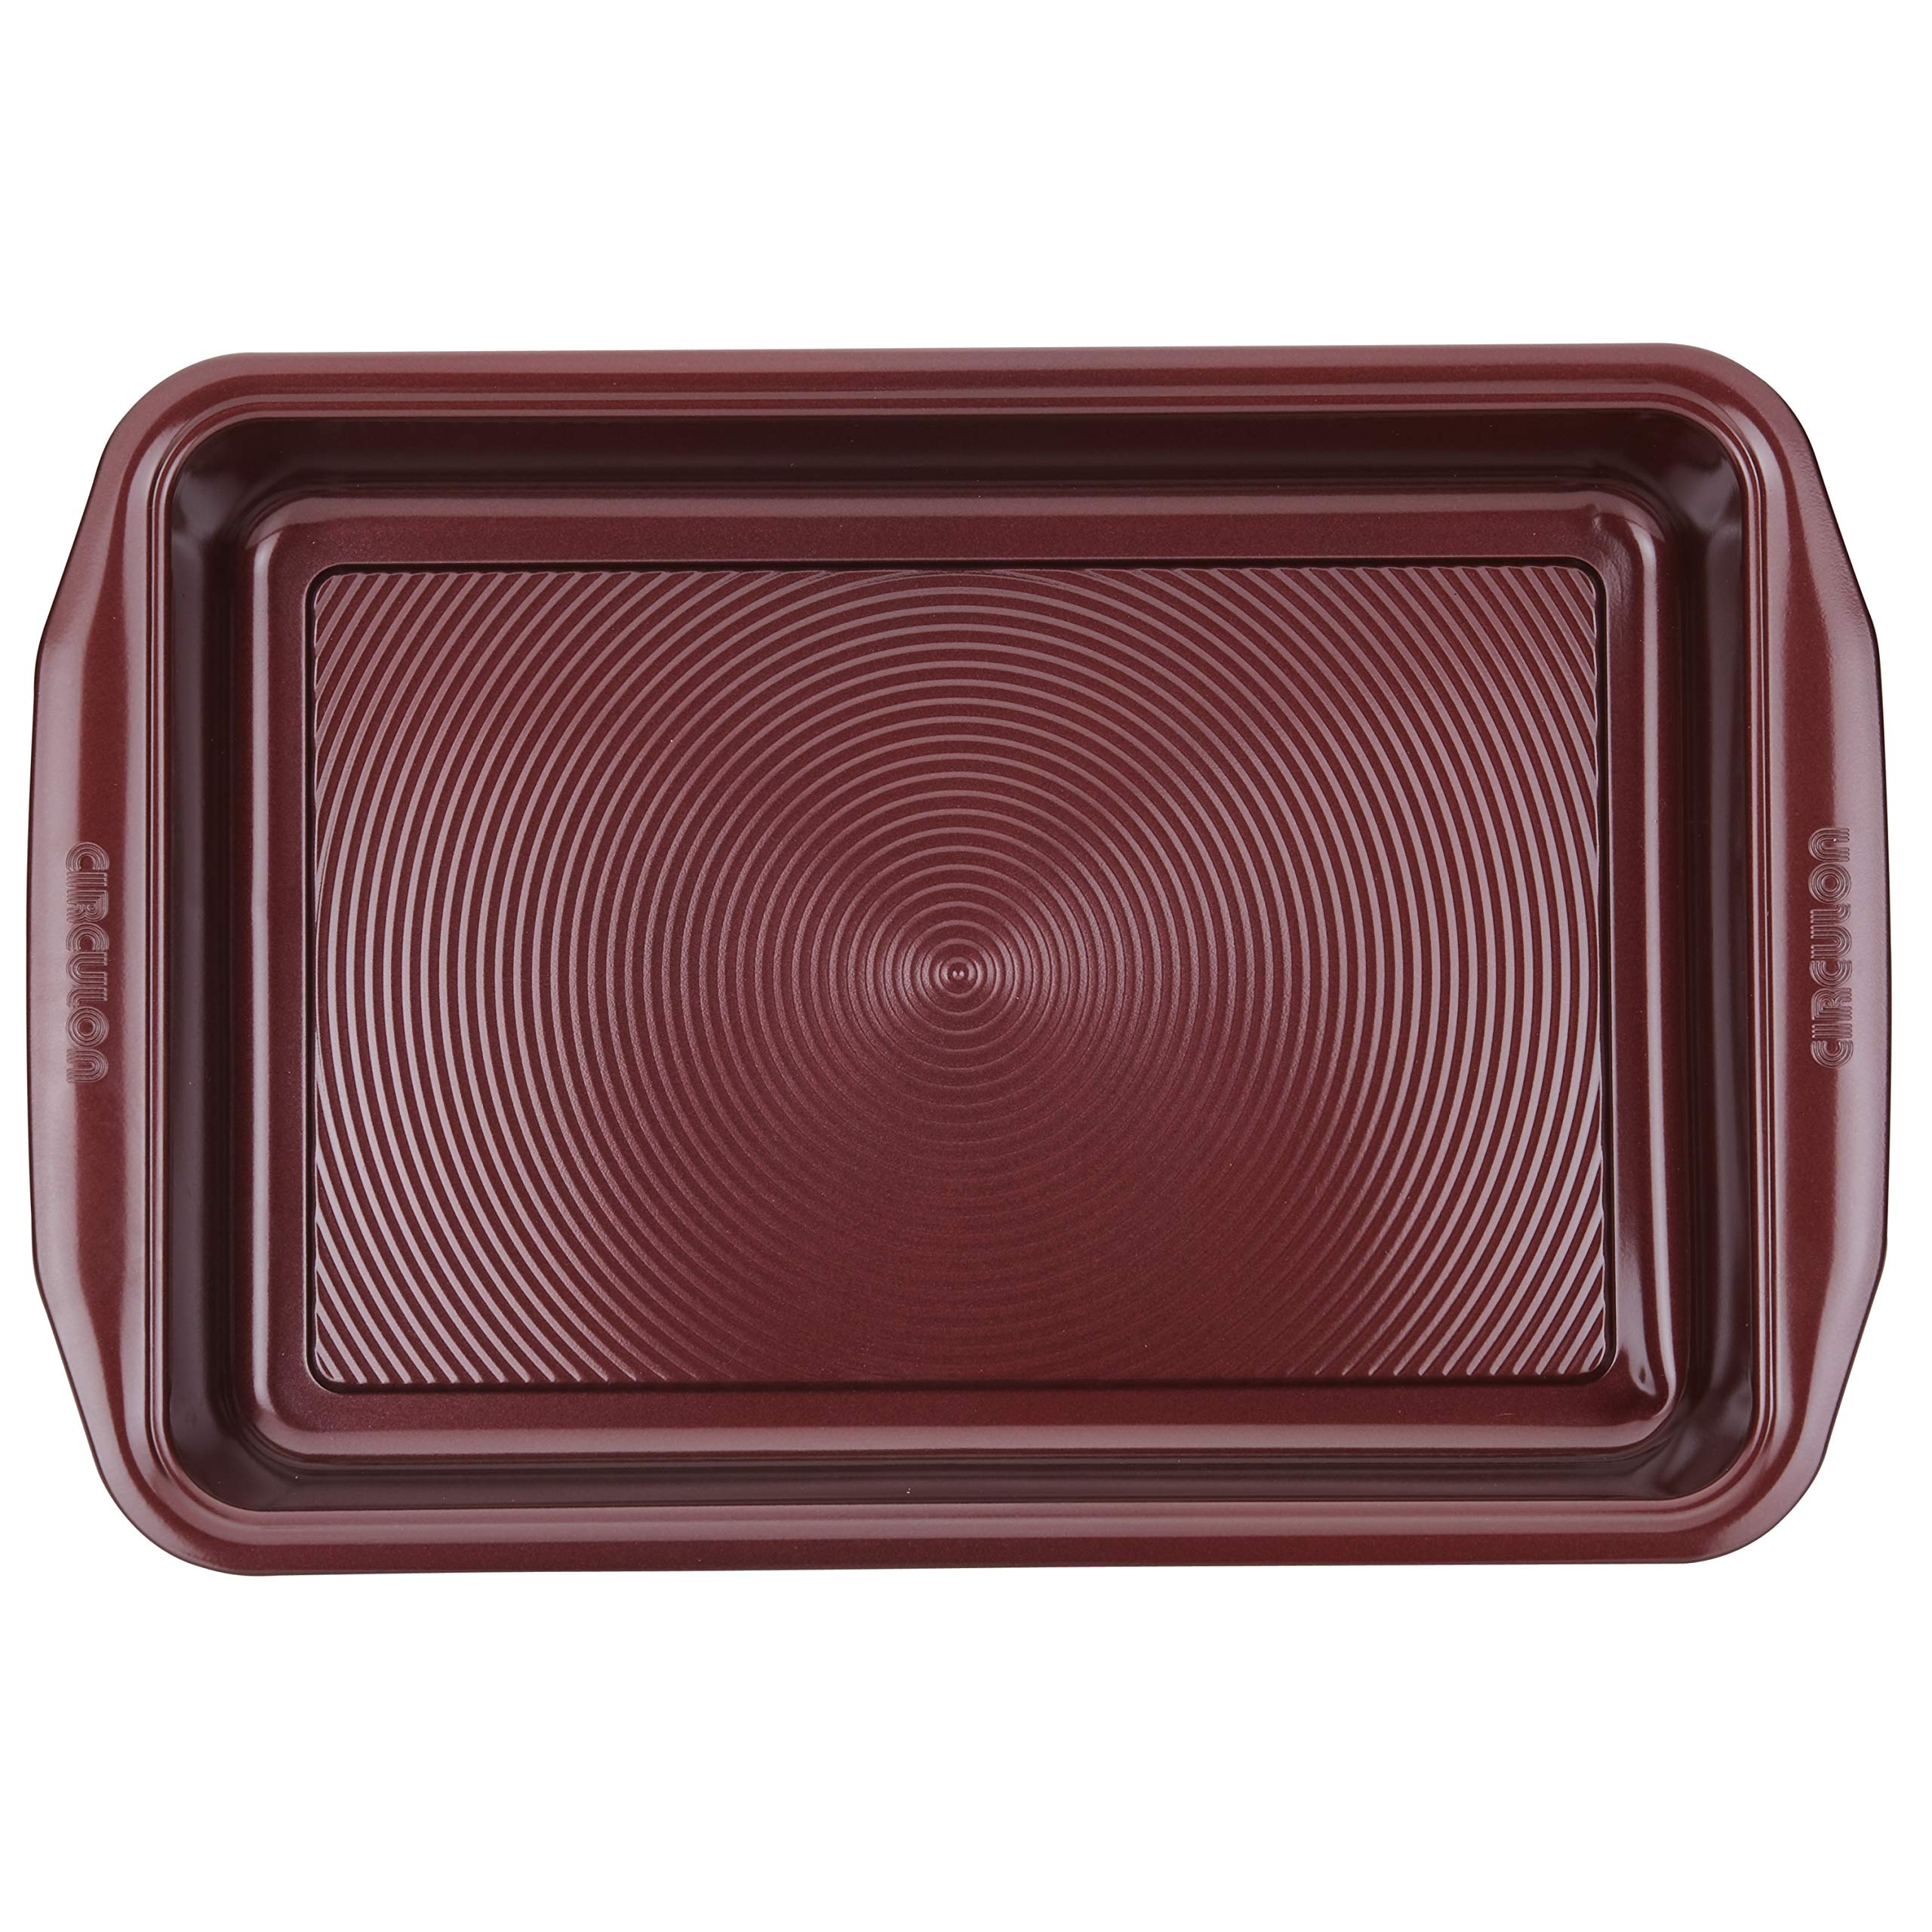 Circulon 47740 10-Piece Steel Bakeware Set, Merlot by Circulon (Image #8)